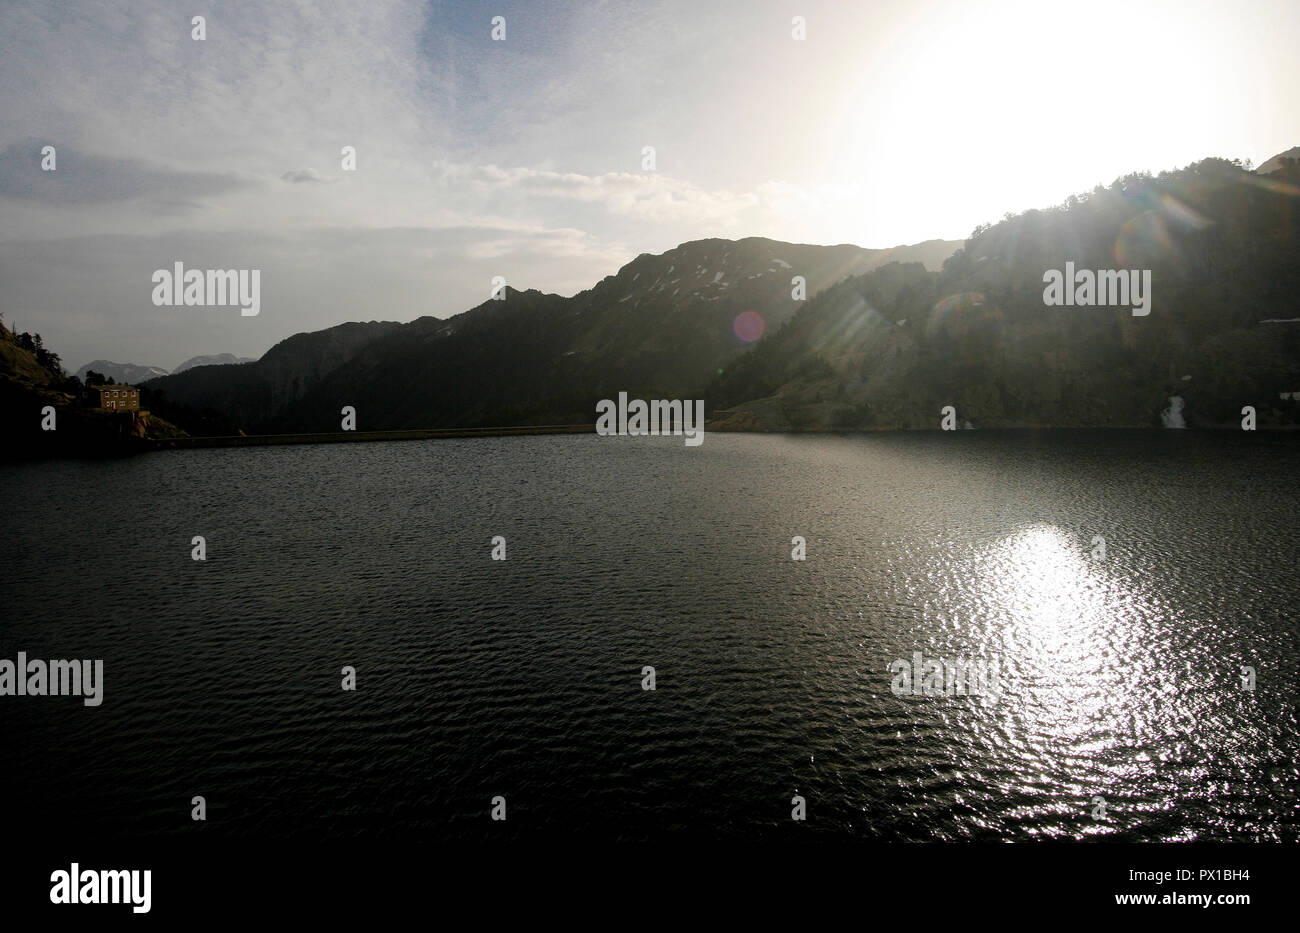 Estany major de Colomers. Aiguestortes National Park. Pyrenees, Spain - Stock Image